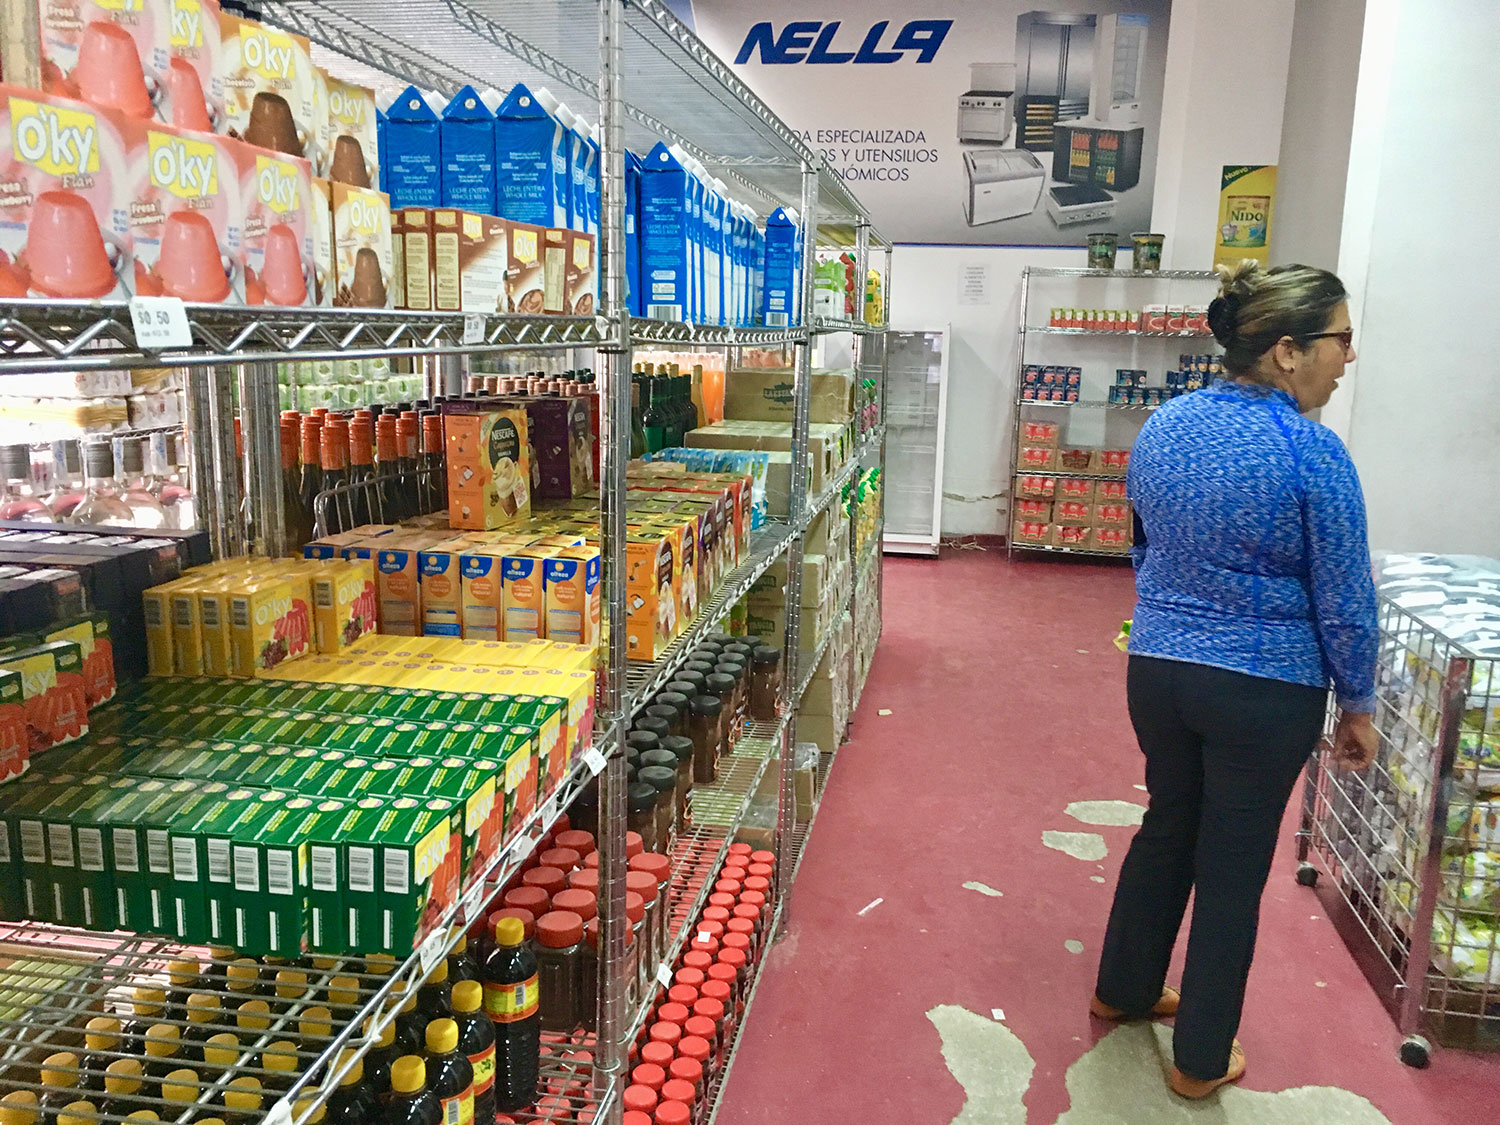 The PanAmerican shop with juice and biscuits.